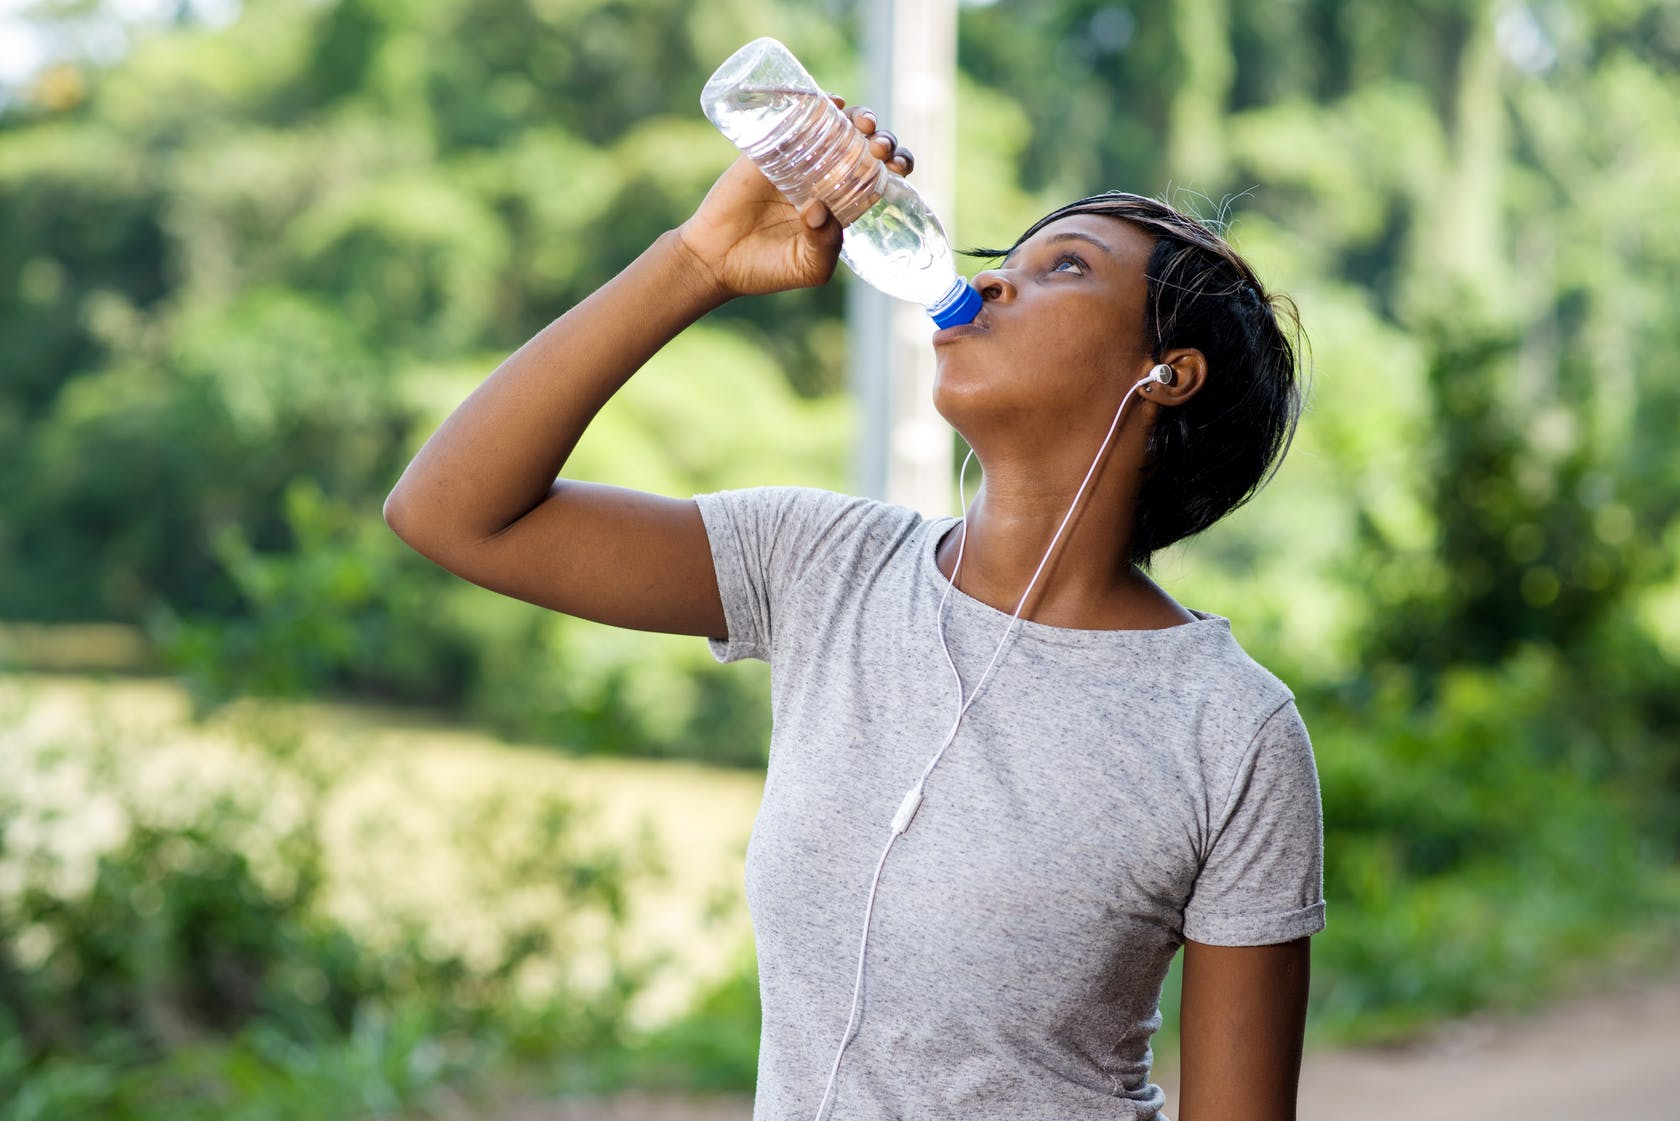 How Much Water Should I Drink on Keto?